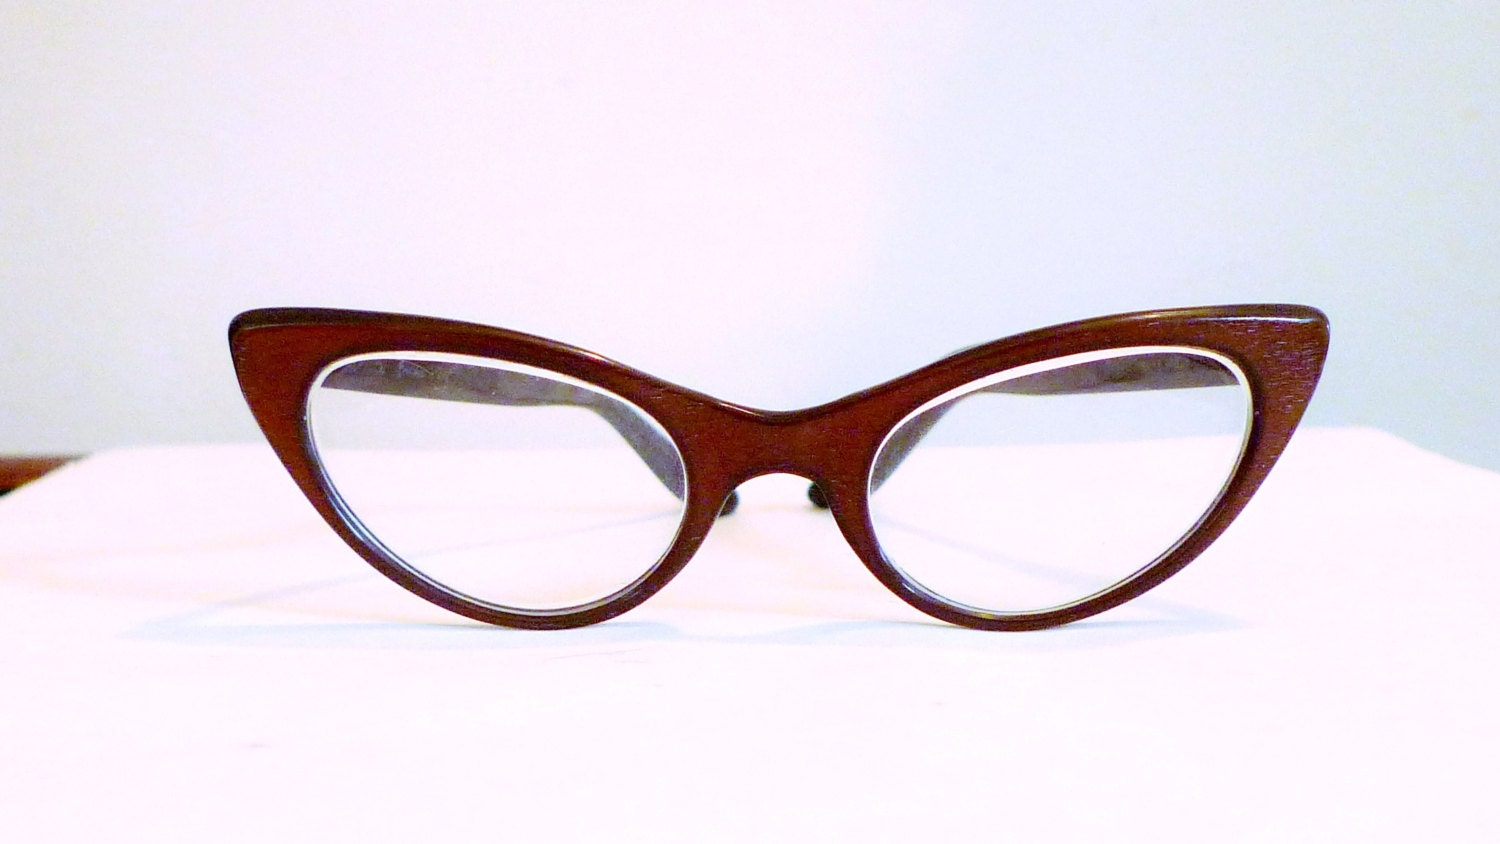 Cat Eyeglass Frames : SALE Safilo Winged Brown Cat Eye Glasses / Frame by ...